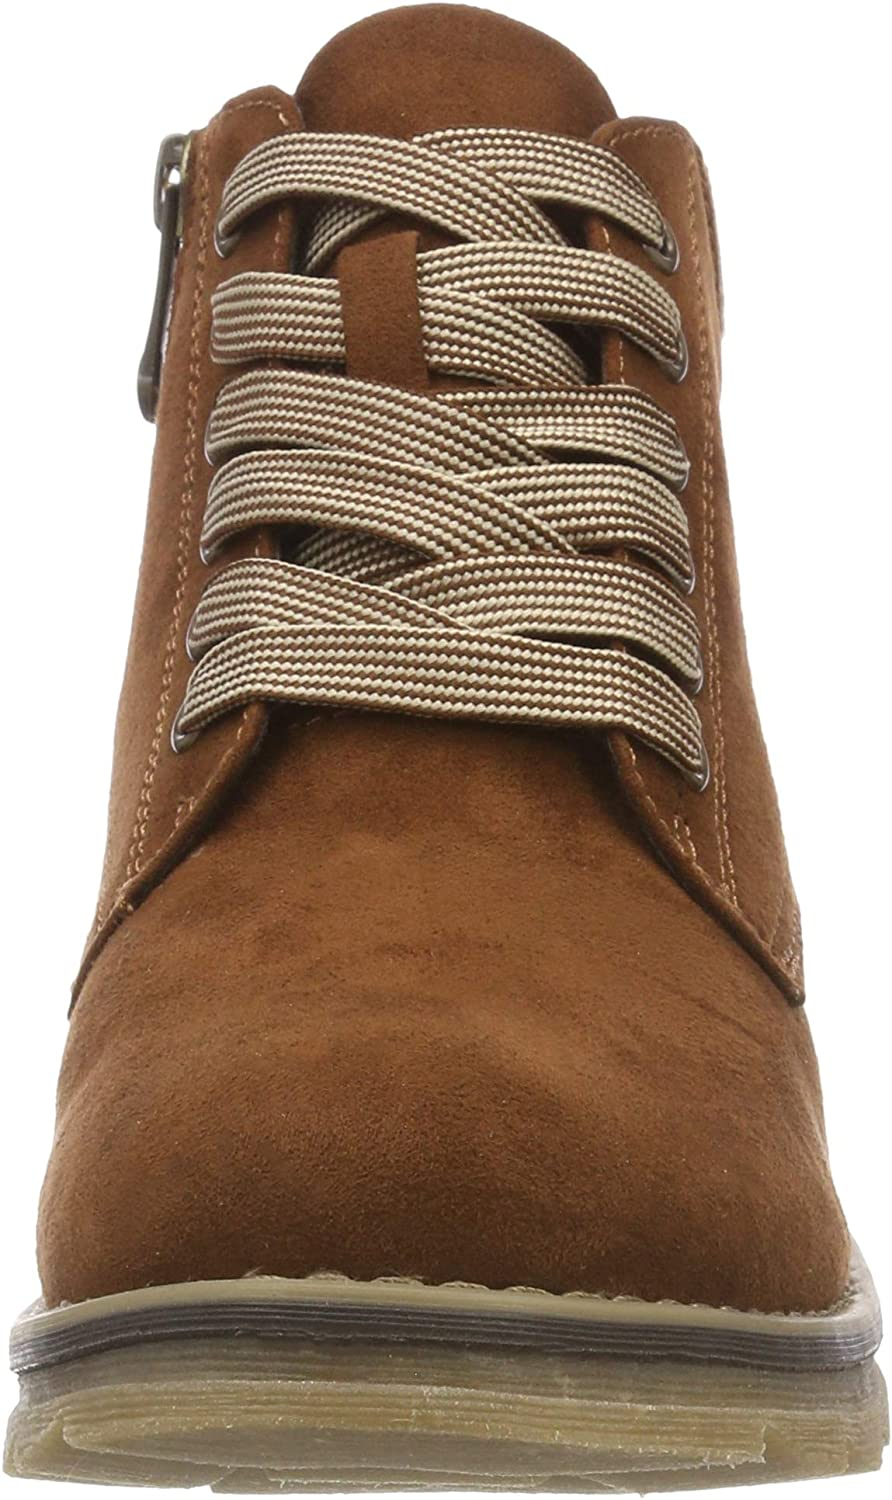 New Womens Marco Tozzi Tan 25208 Microfibre Boots Ankle Lace Up Zip